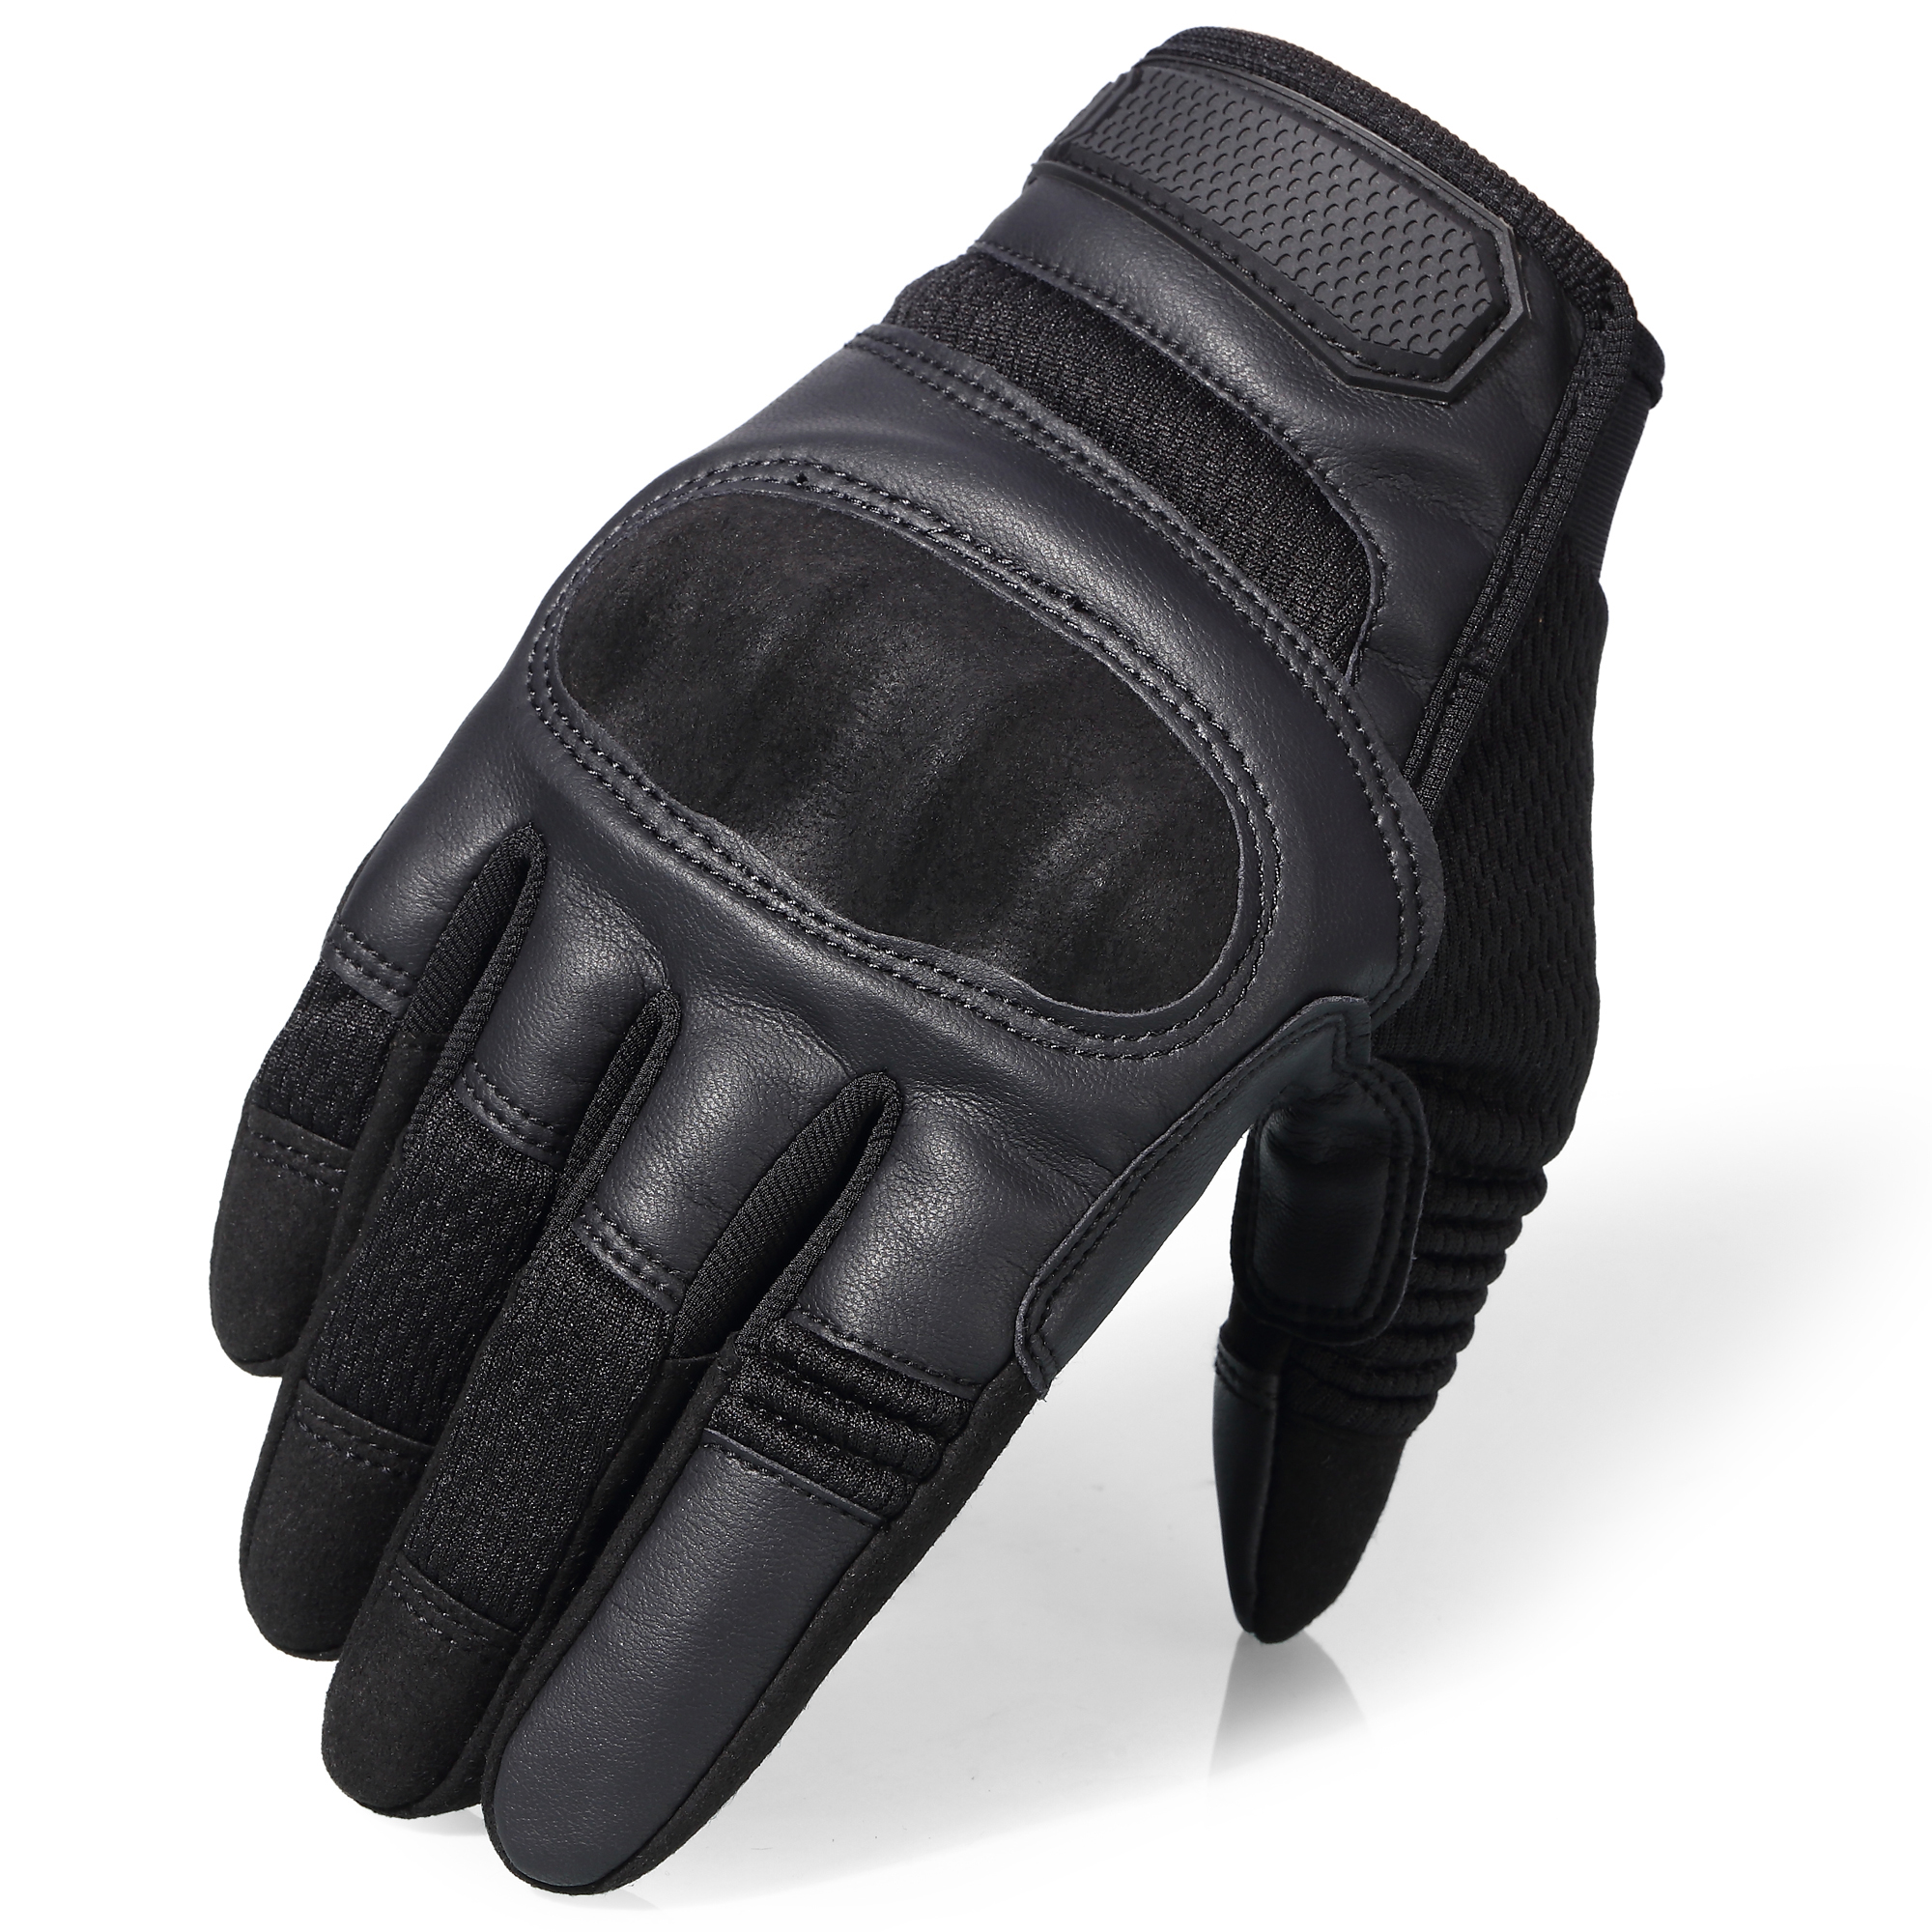 HTB15NcoKhWYBuNjy1zkq6xGGpXaX Touchscreen Leather Motorcycle Skidproof Hard Knuckle Full Finger Gloves Protective Gear for Outdoor Sports Racing Motocross ATV